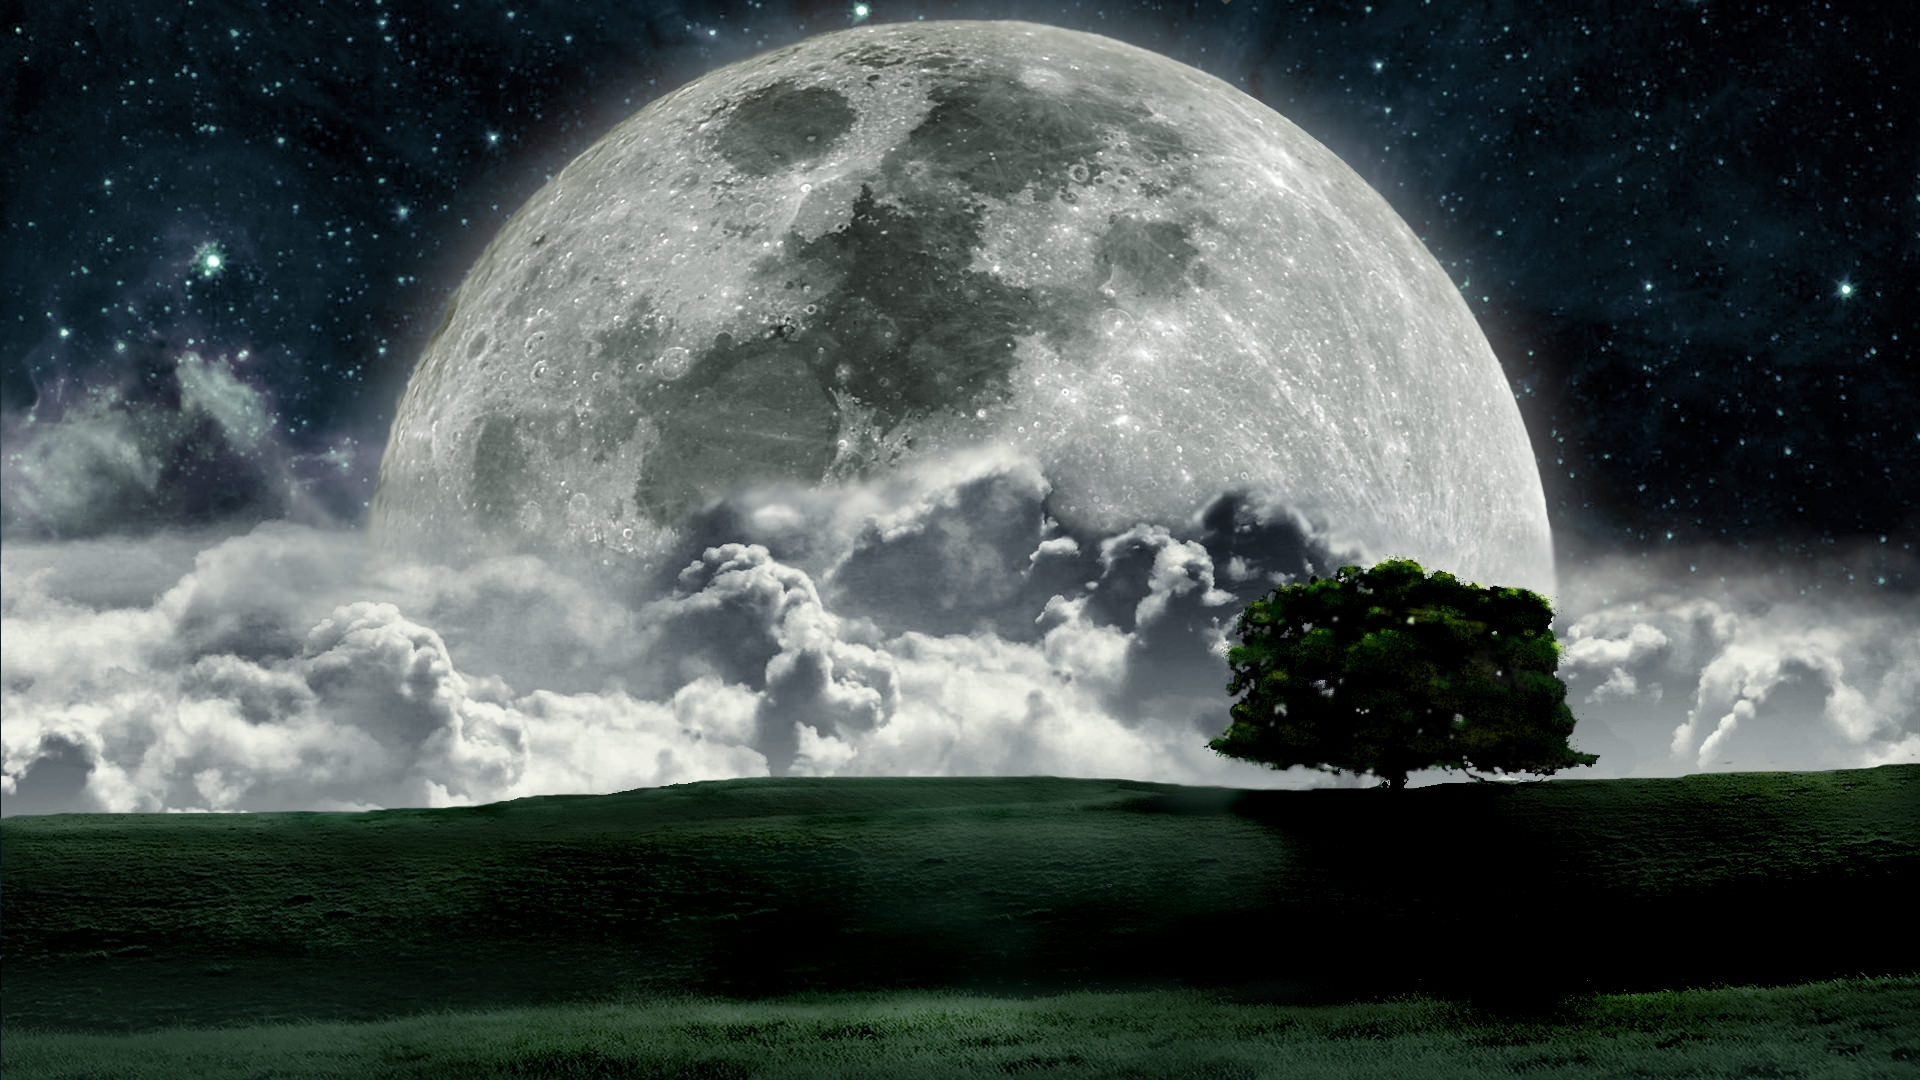 moon-landscape-dream-wallpapers